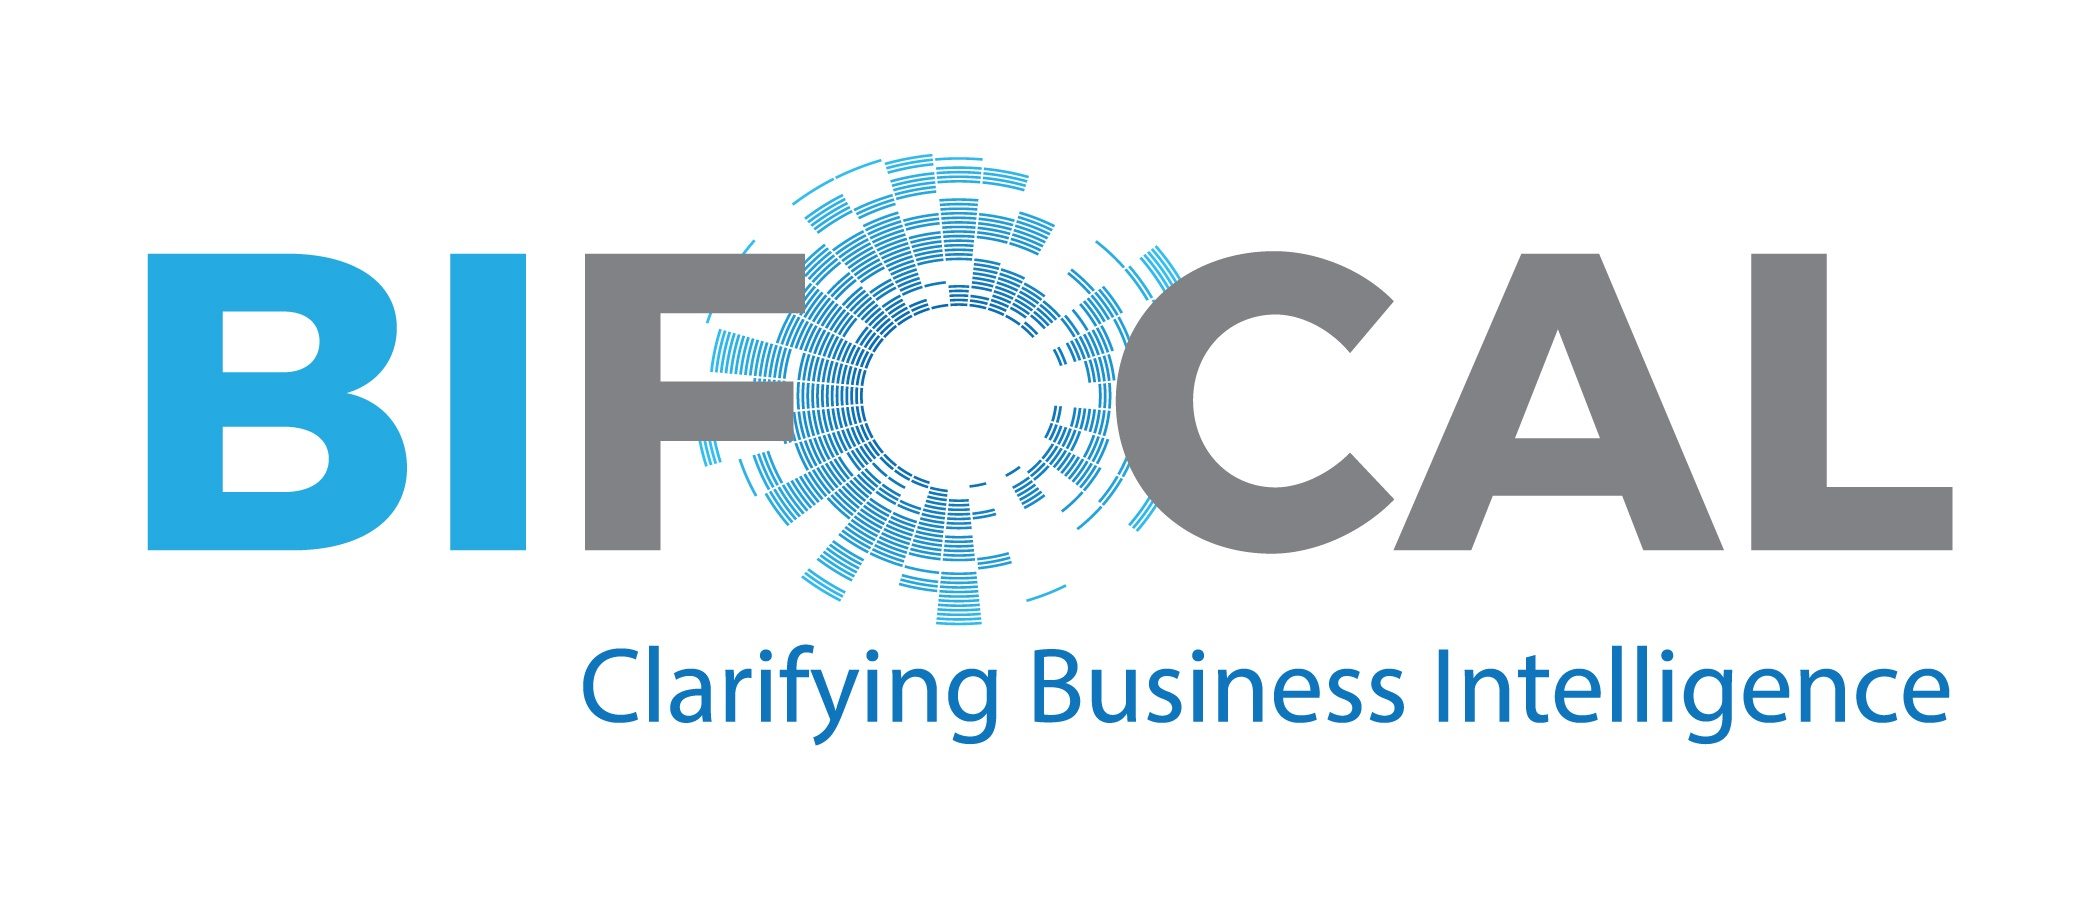 BI Focal - Clarifying Business Intelligence